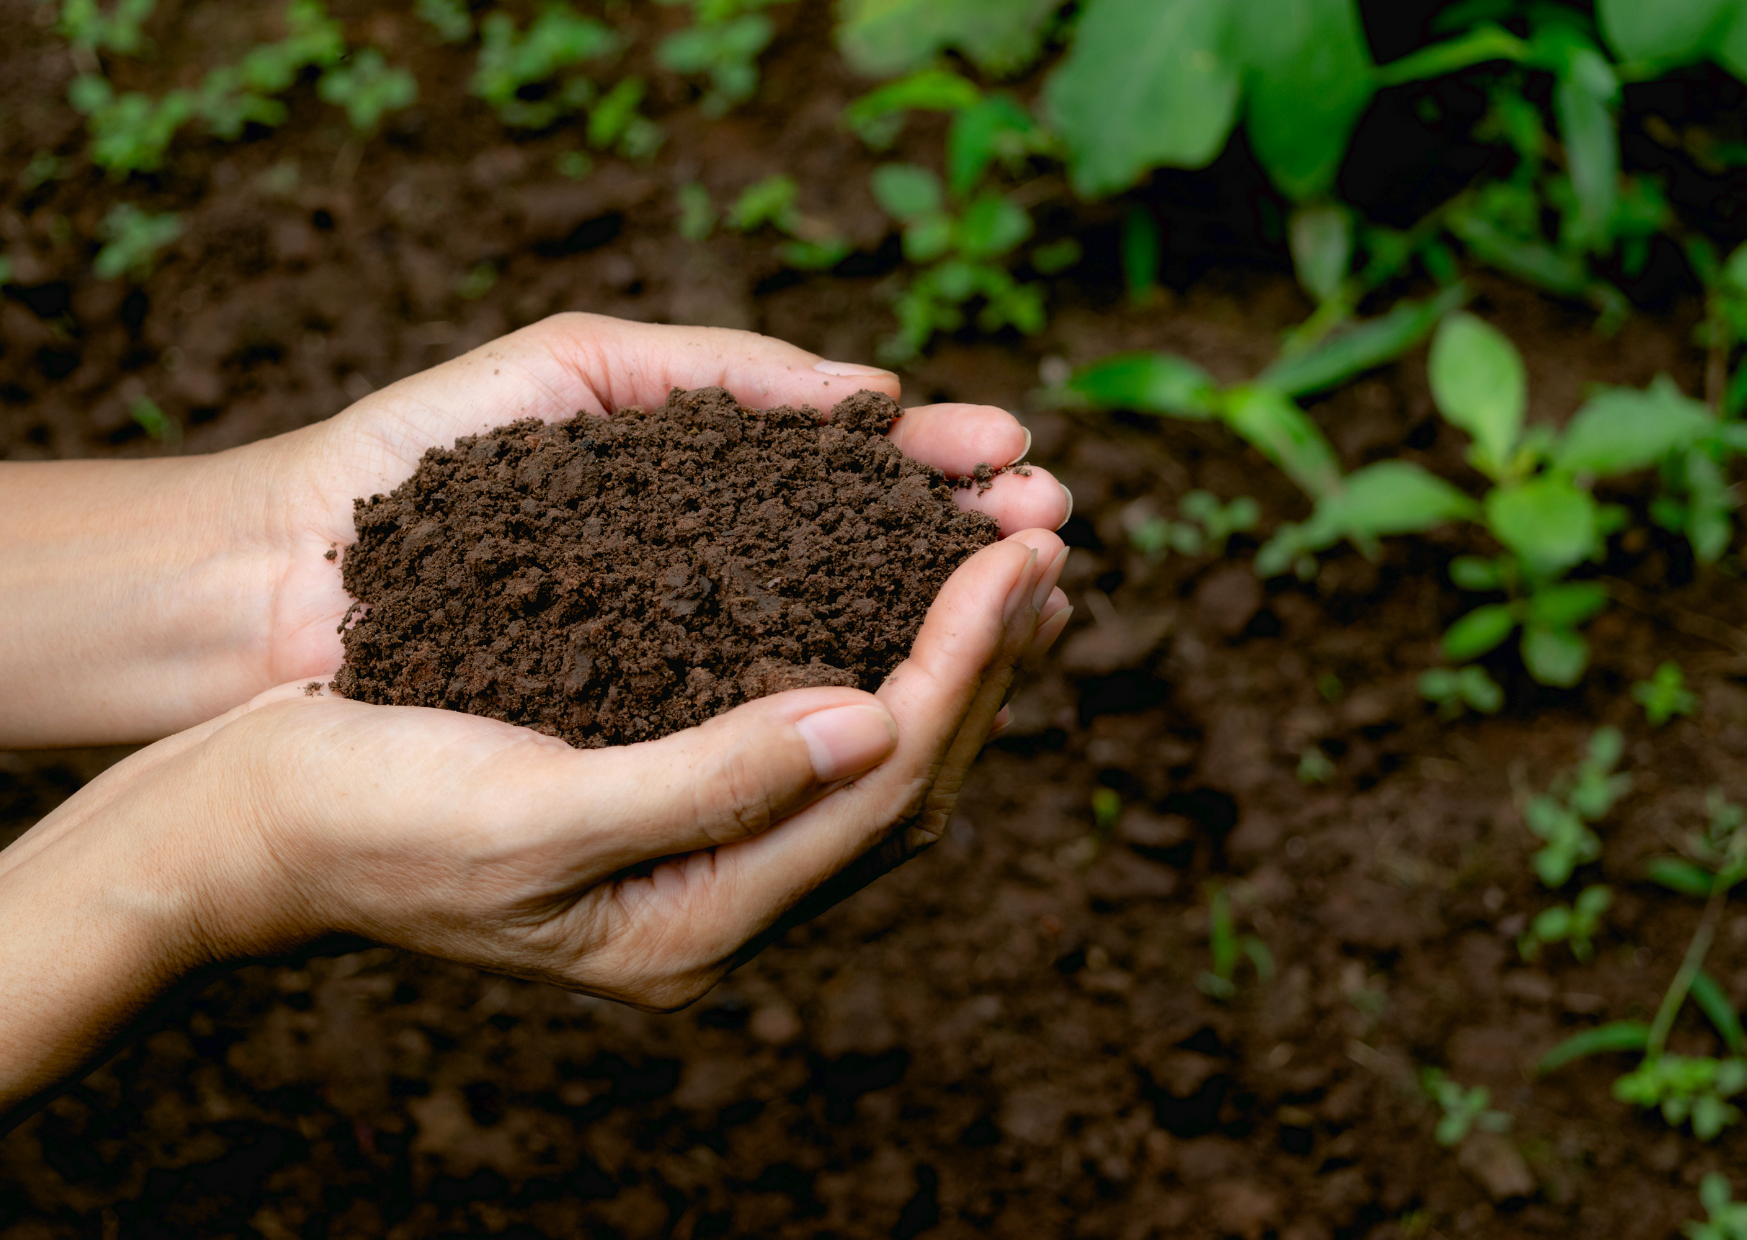 the soil in the hands